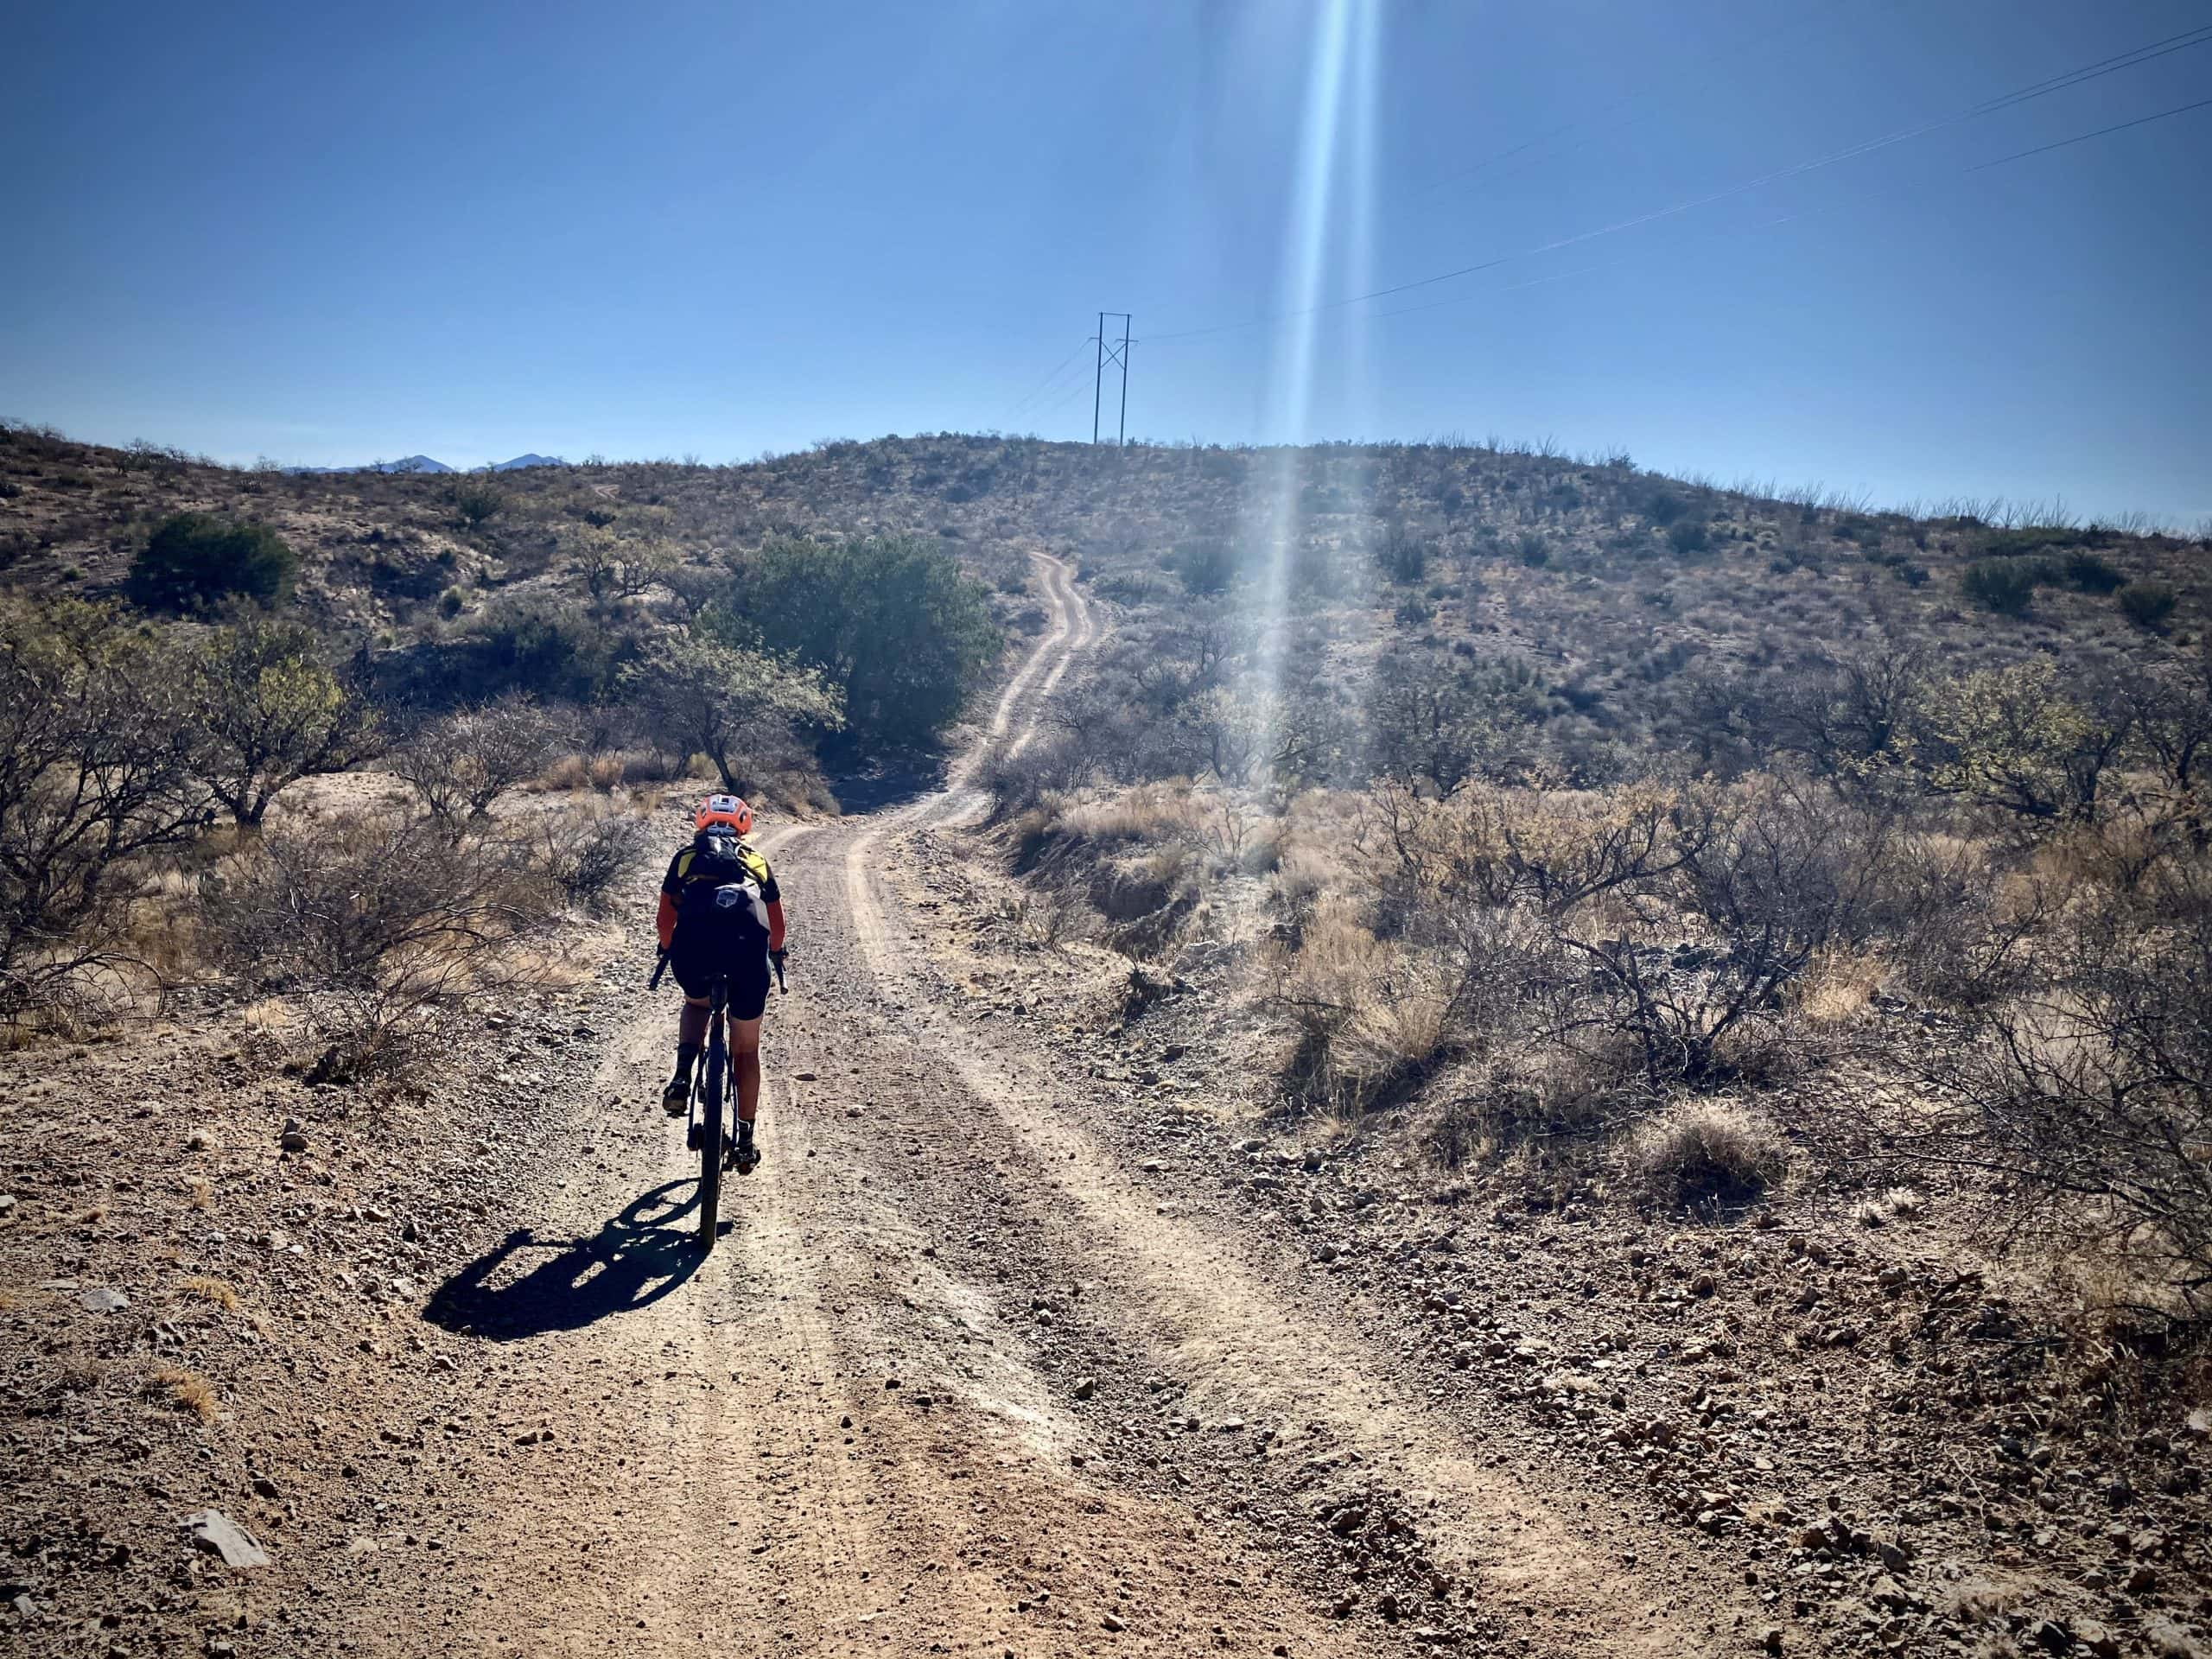 Cyclist on hilly gravel road following a power line in Arizona